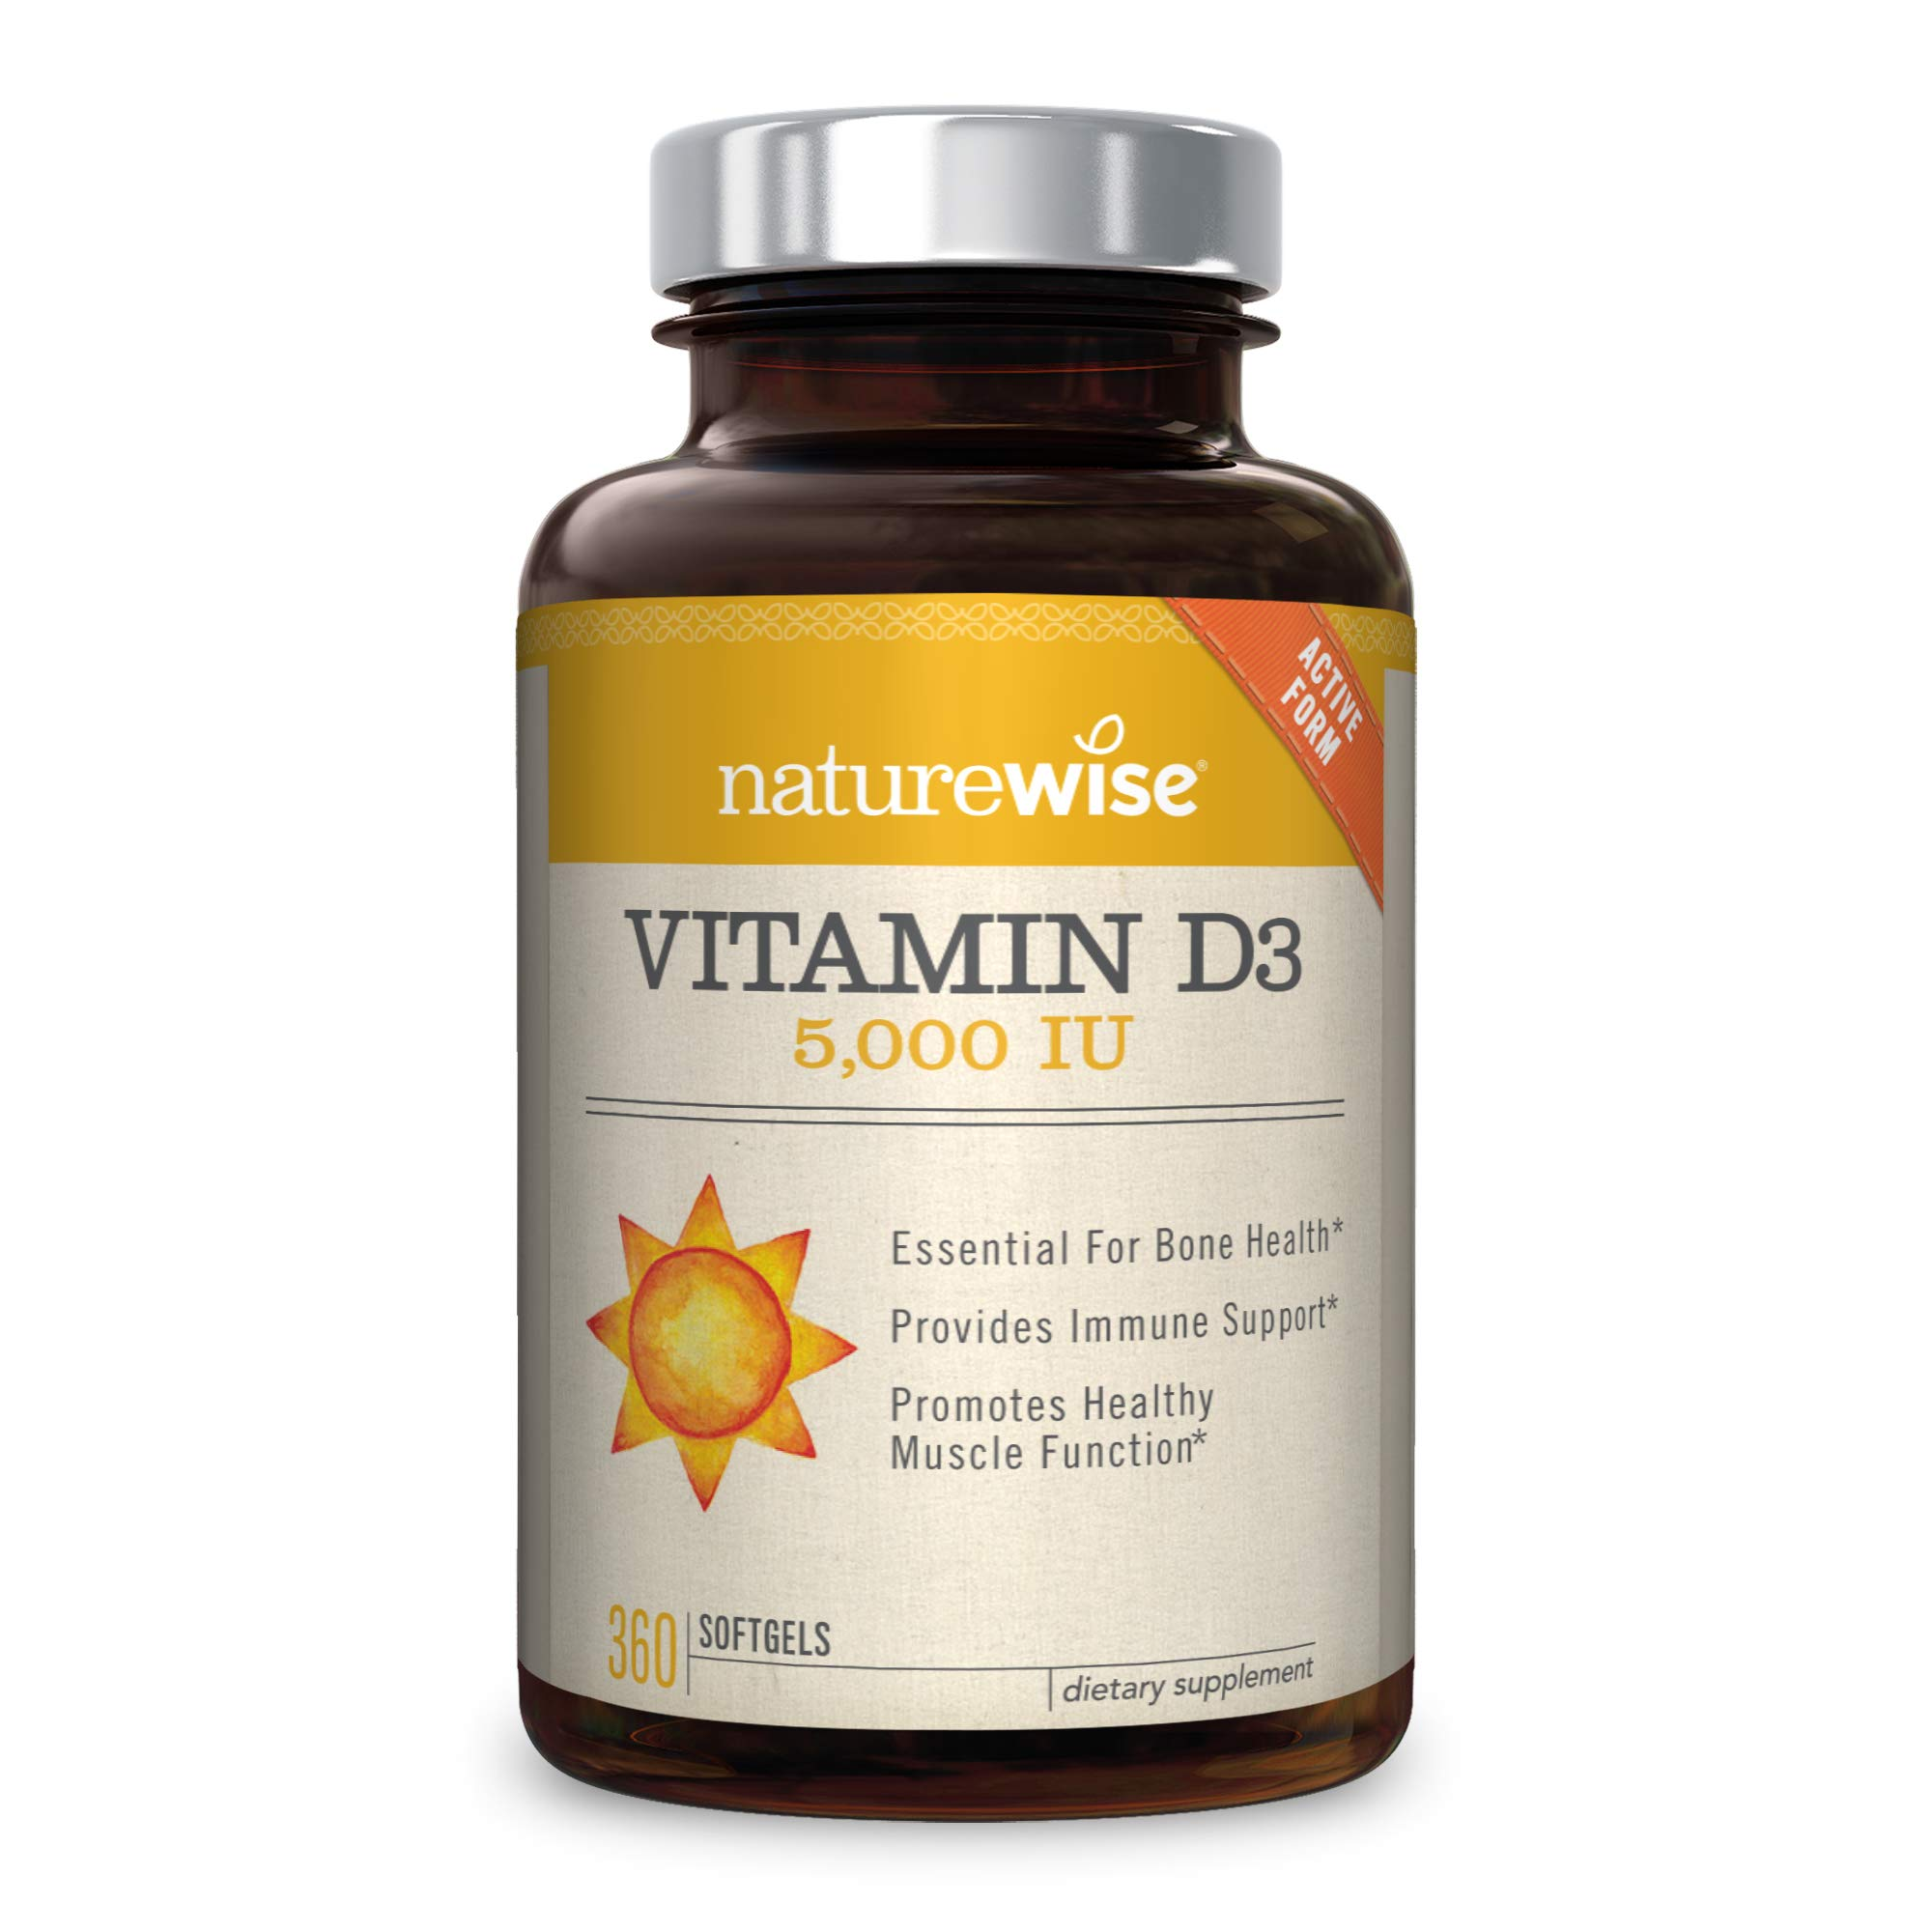 NatureWise Vitamin D3 5,000 IU for Healthy Muscle Function, Bone Health, & Immune Support | Non-GMO in Cold-Pressed Organic Olive Oil & Gluten-Free (Packaging May Vary) [360 Count] by NatureWise